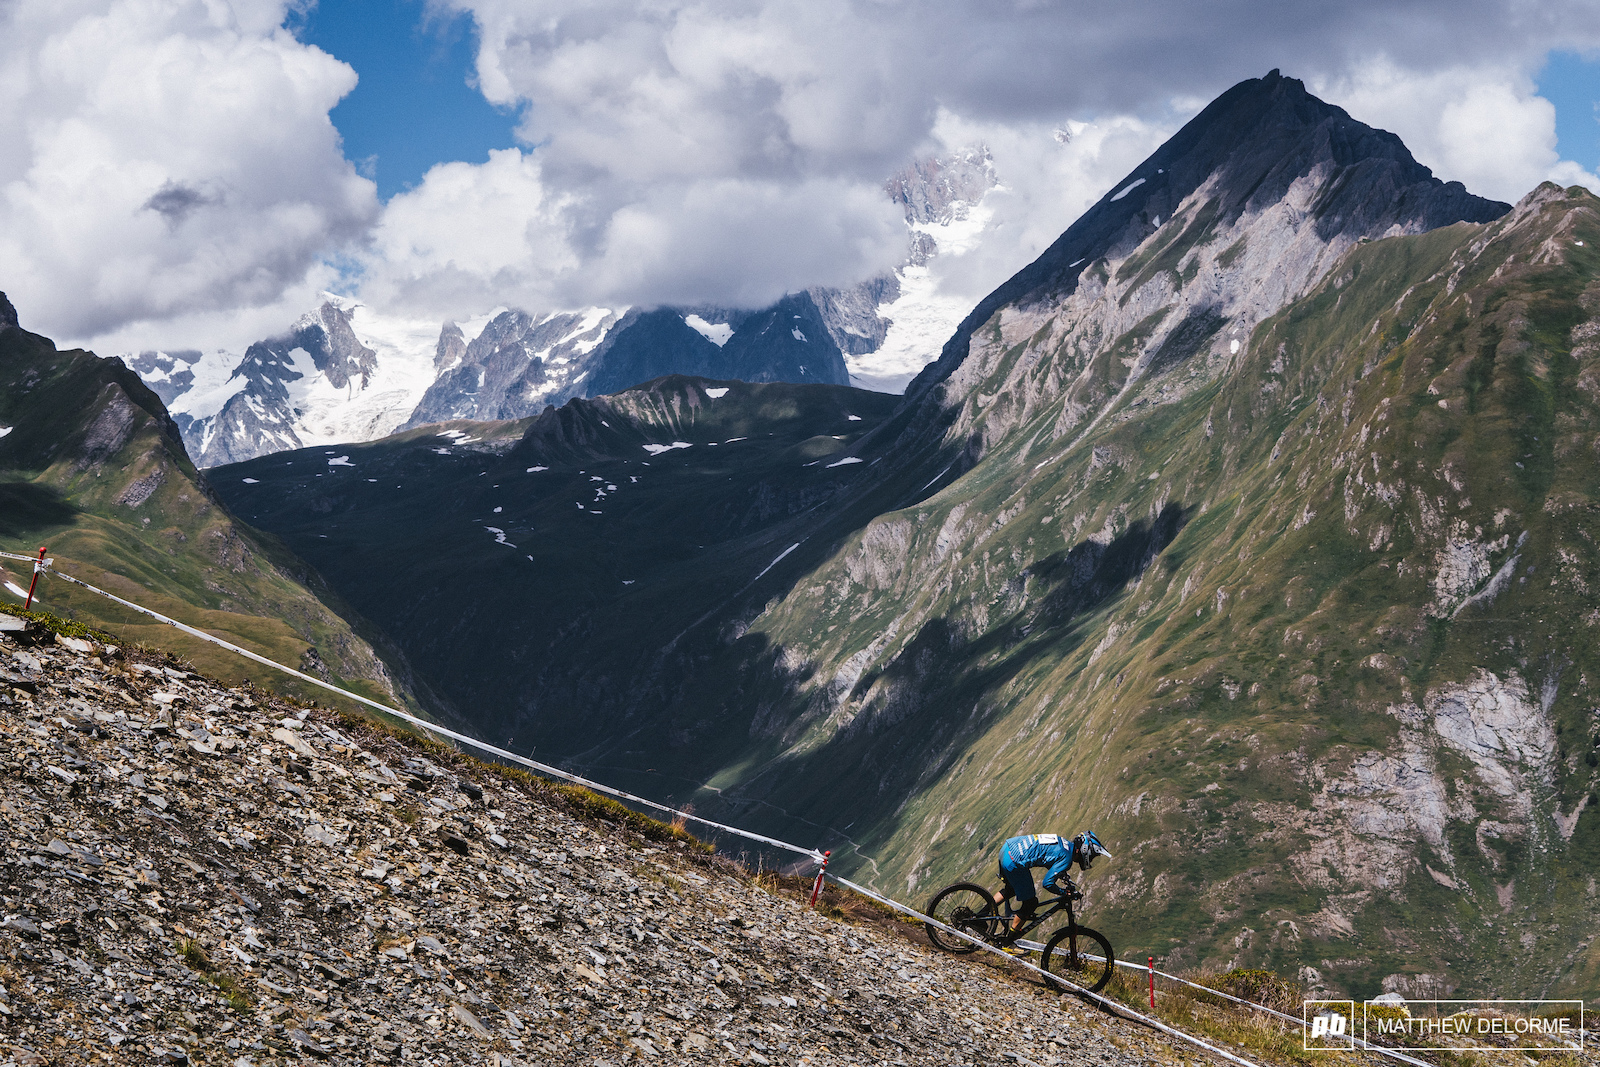 Florian Nicolai takes ninth place on the Italian side of the tallest mountain in Europe.